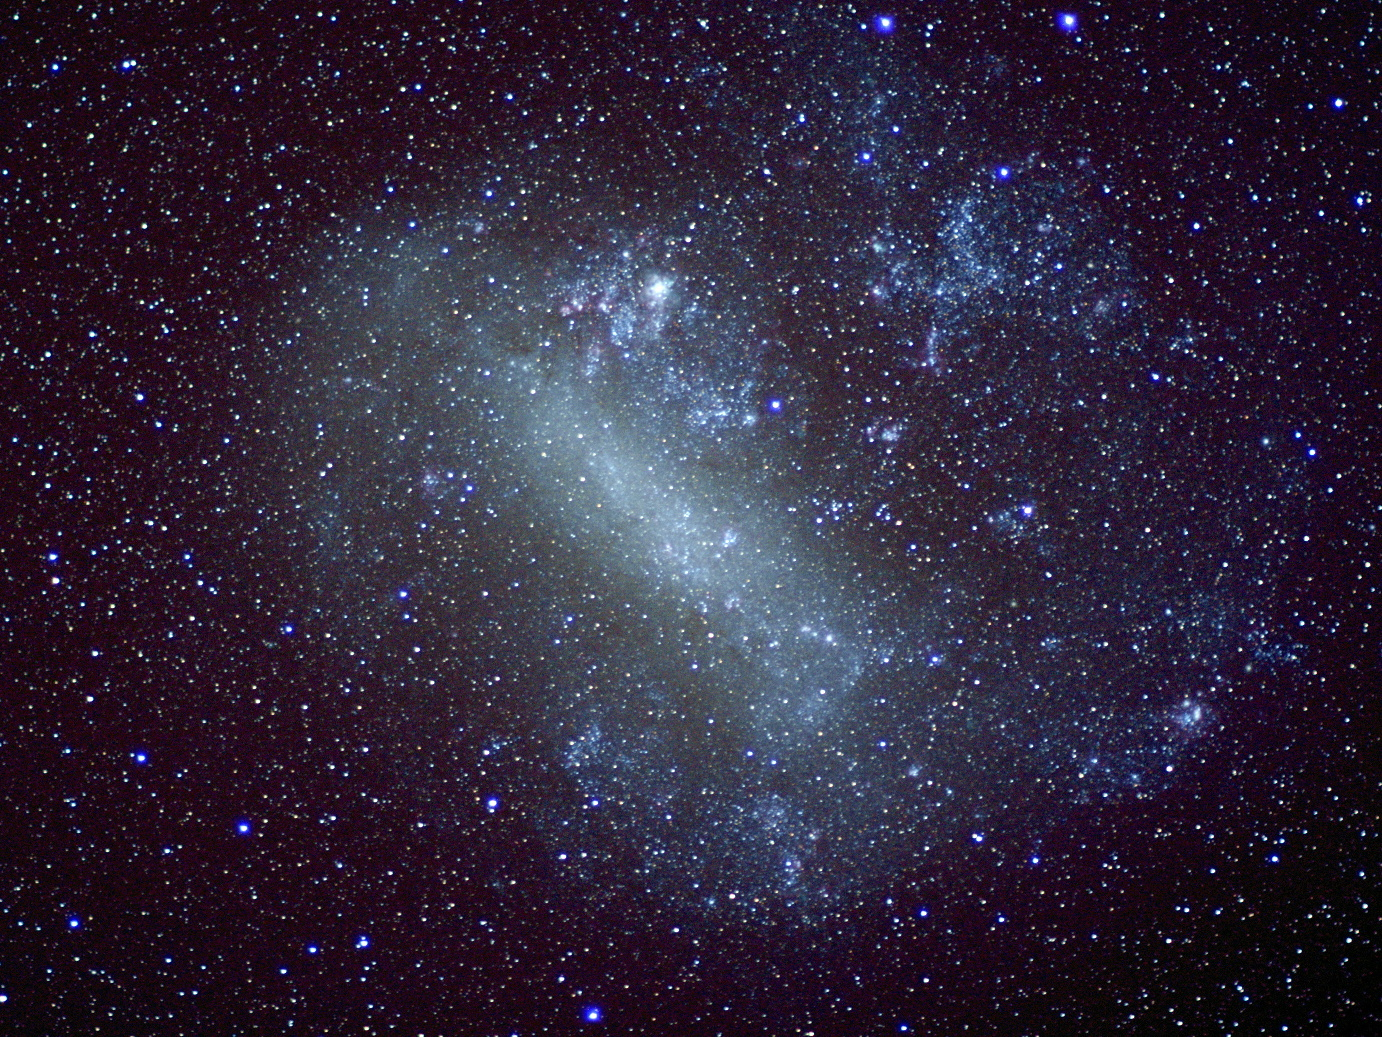 An image of the Large Magellanic Cloud captured with a DSLR and 85mm f/1.4 lens from New Zealand on 10 December 2015. Image credit: Ade Ashford.